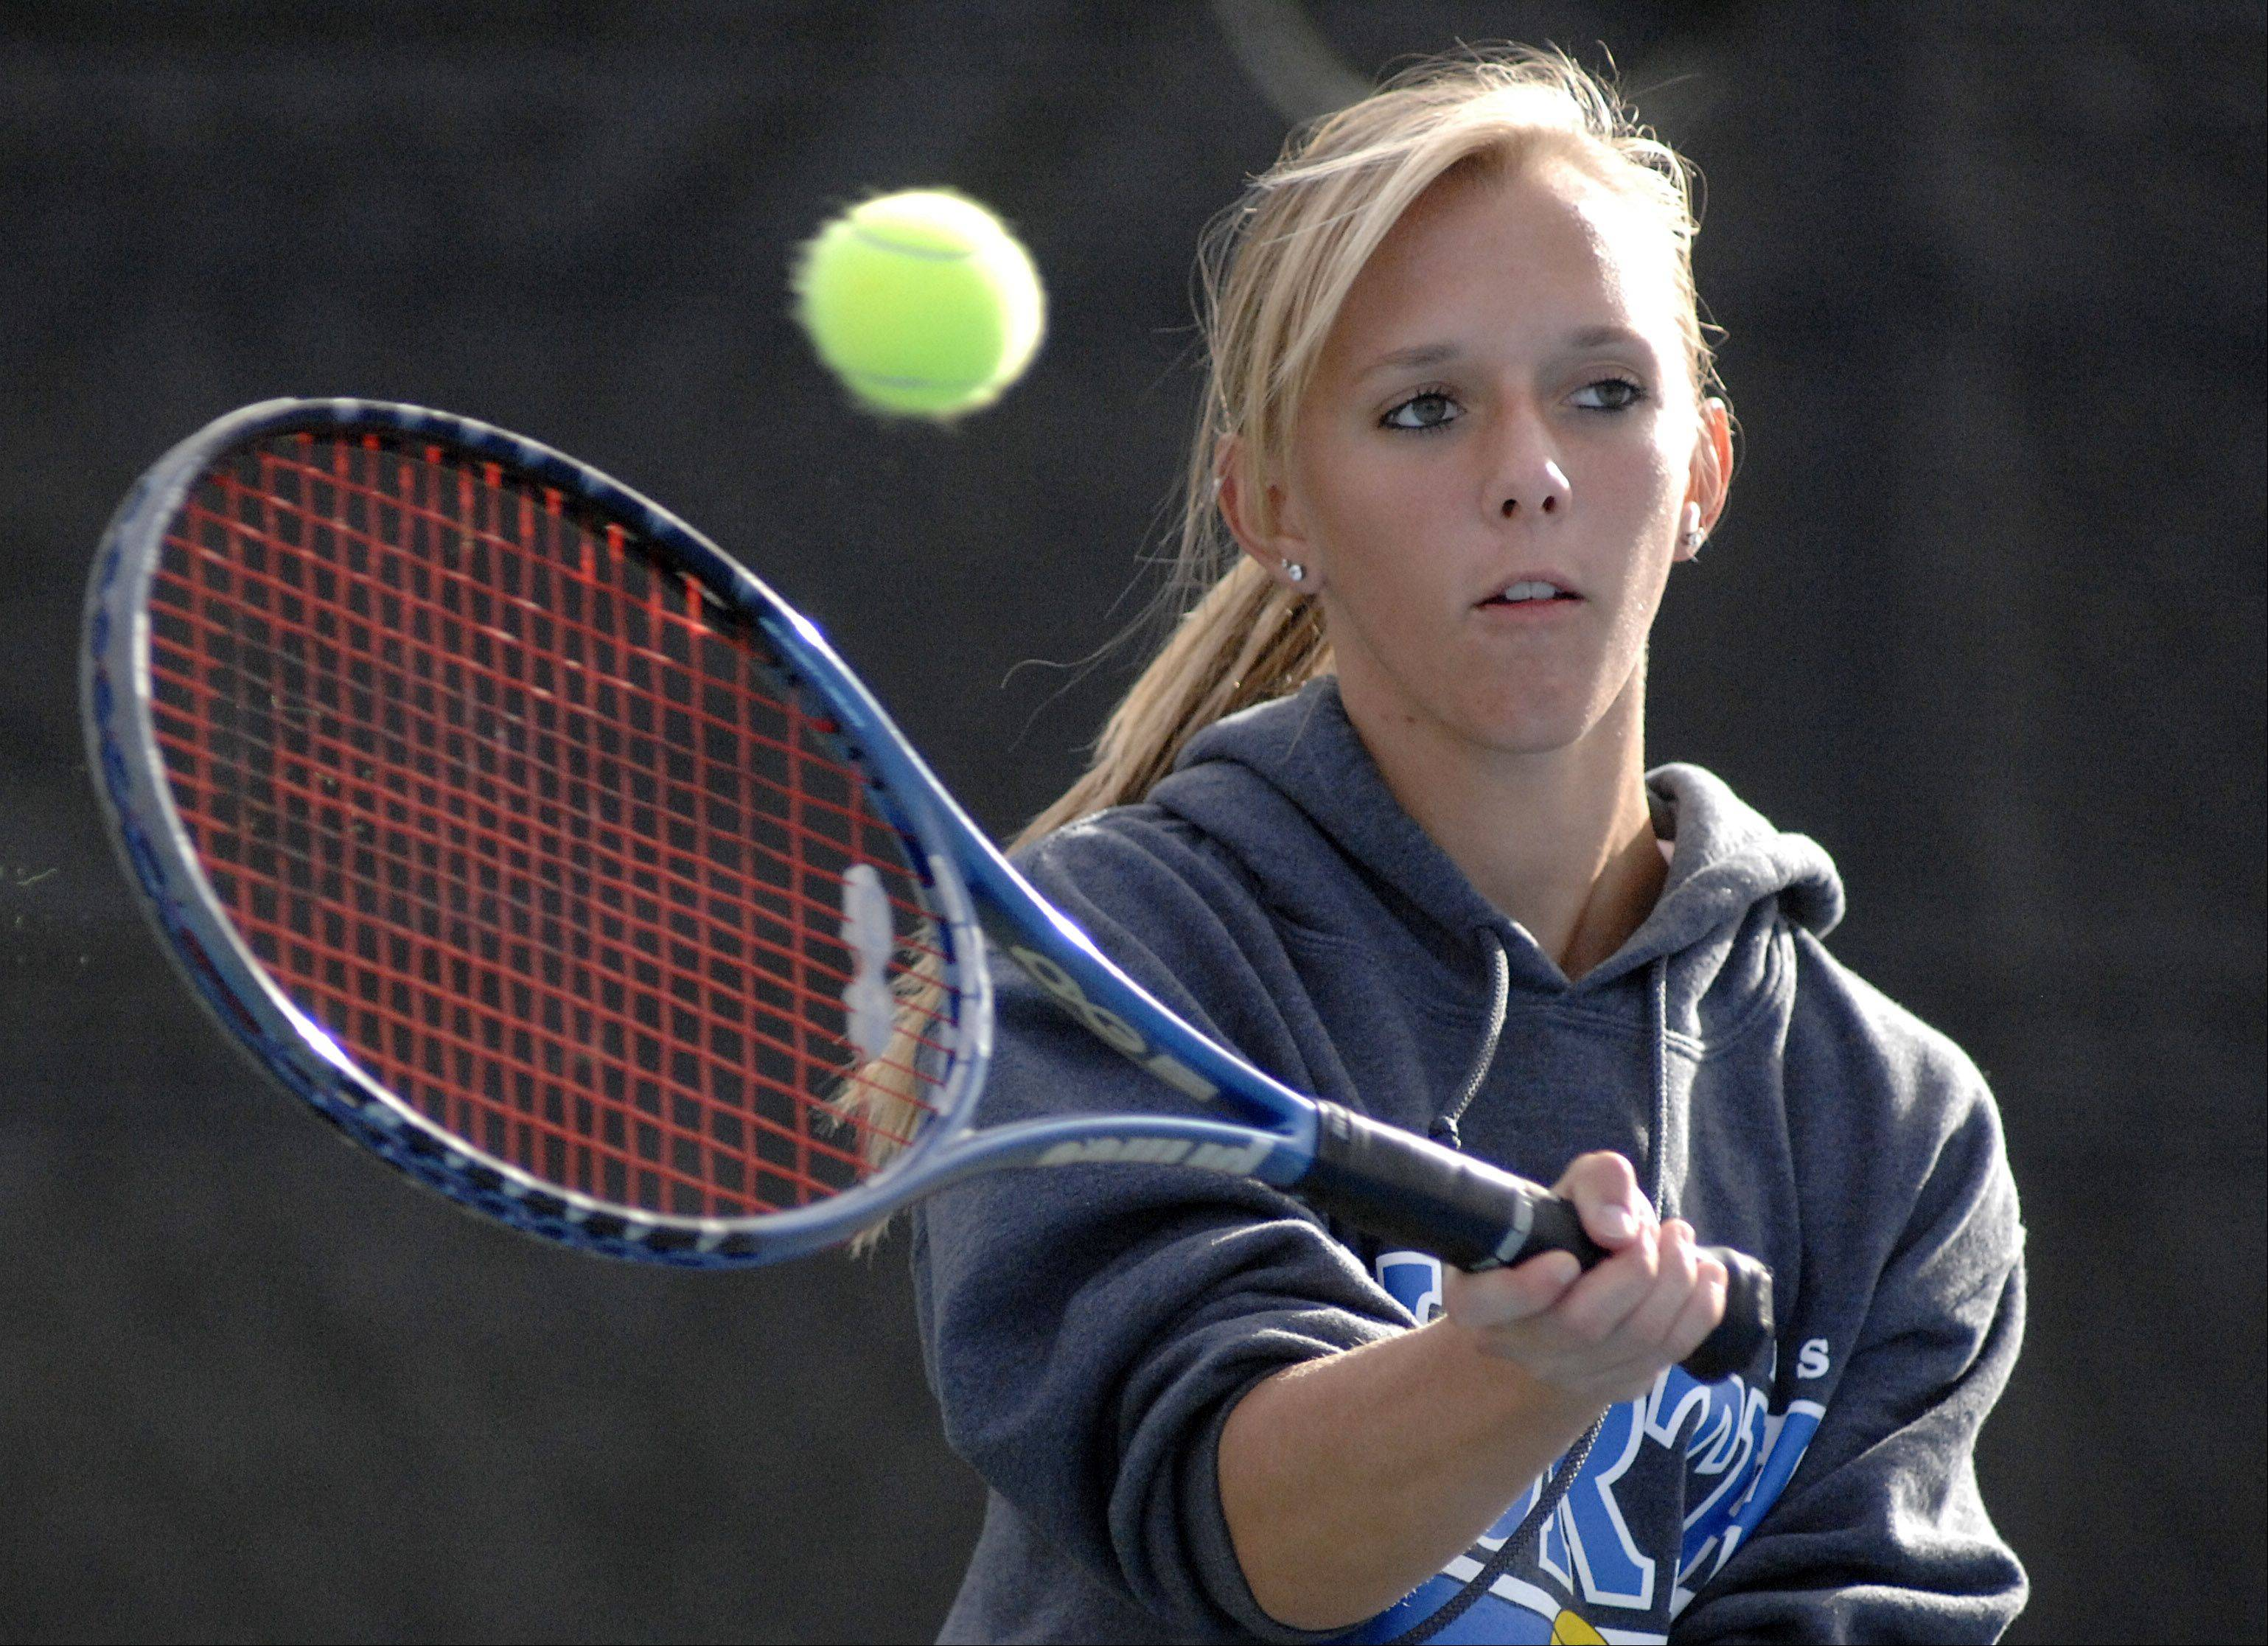 St. Charles North's Tessa Masa in the first singles match vs St. Charles East's Sarah Church on Tuesday, September 18.